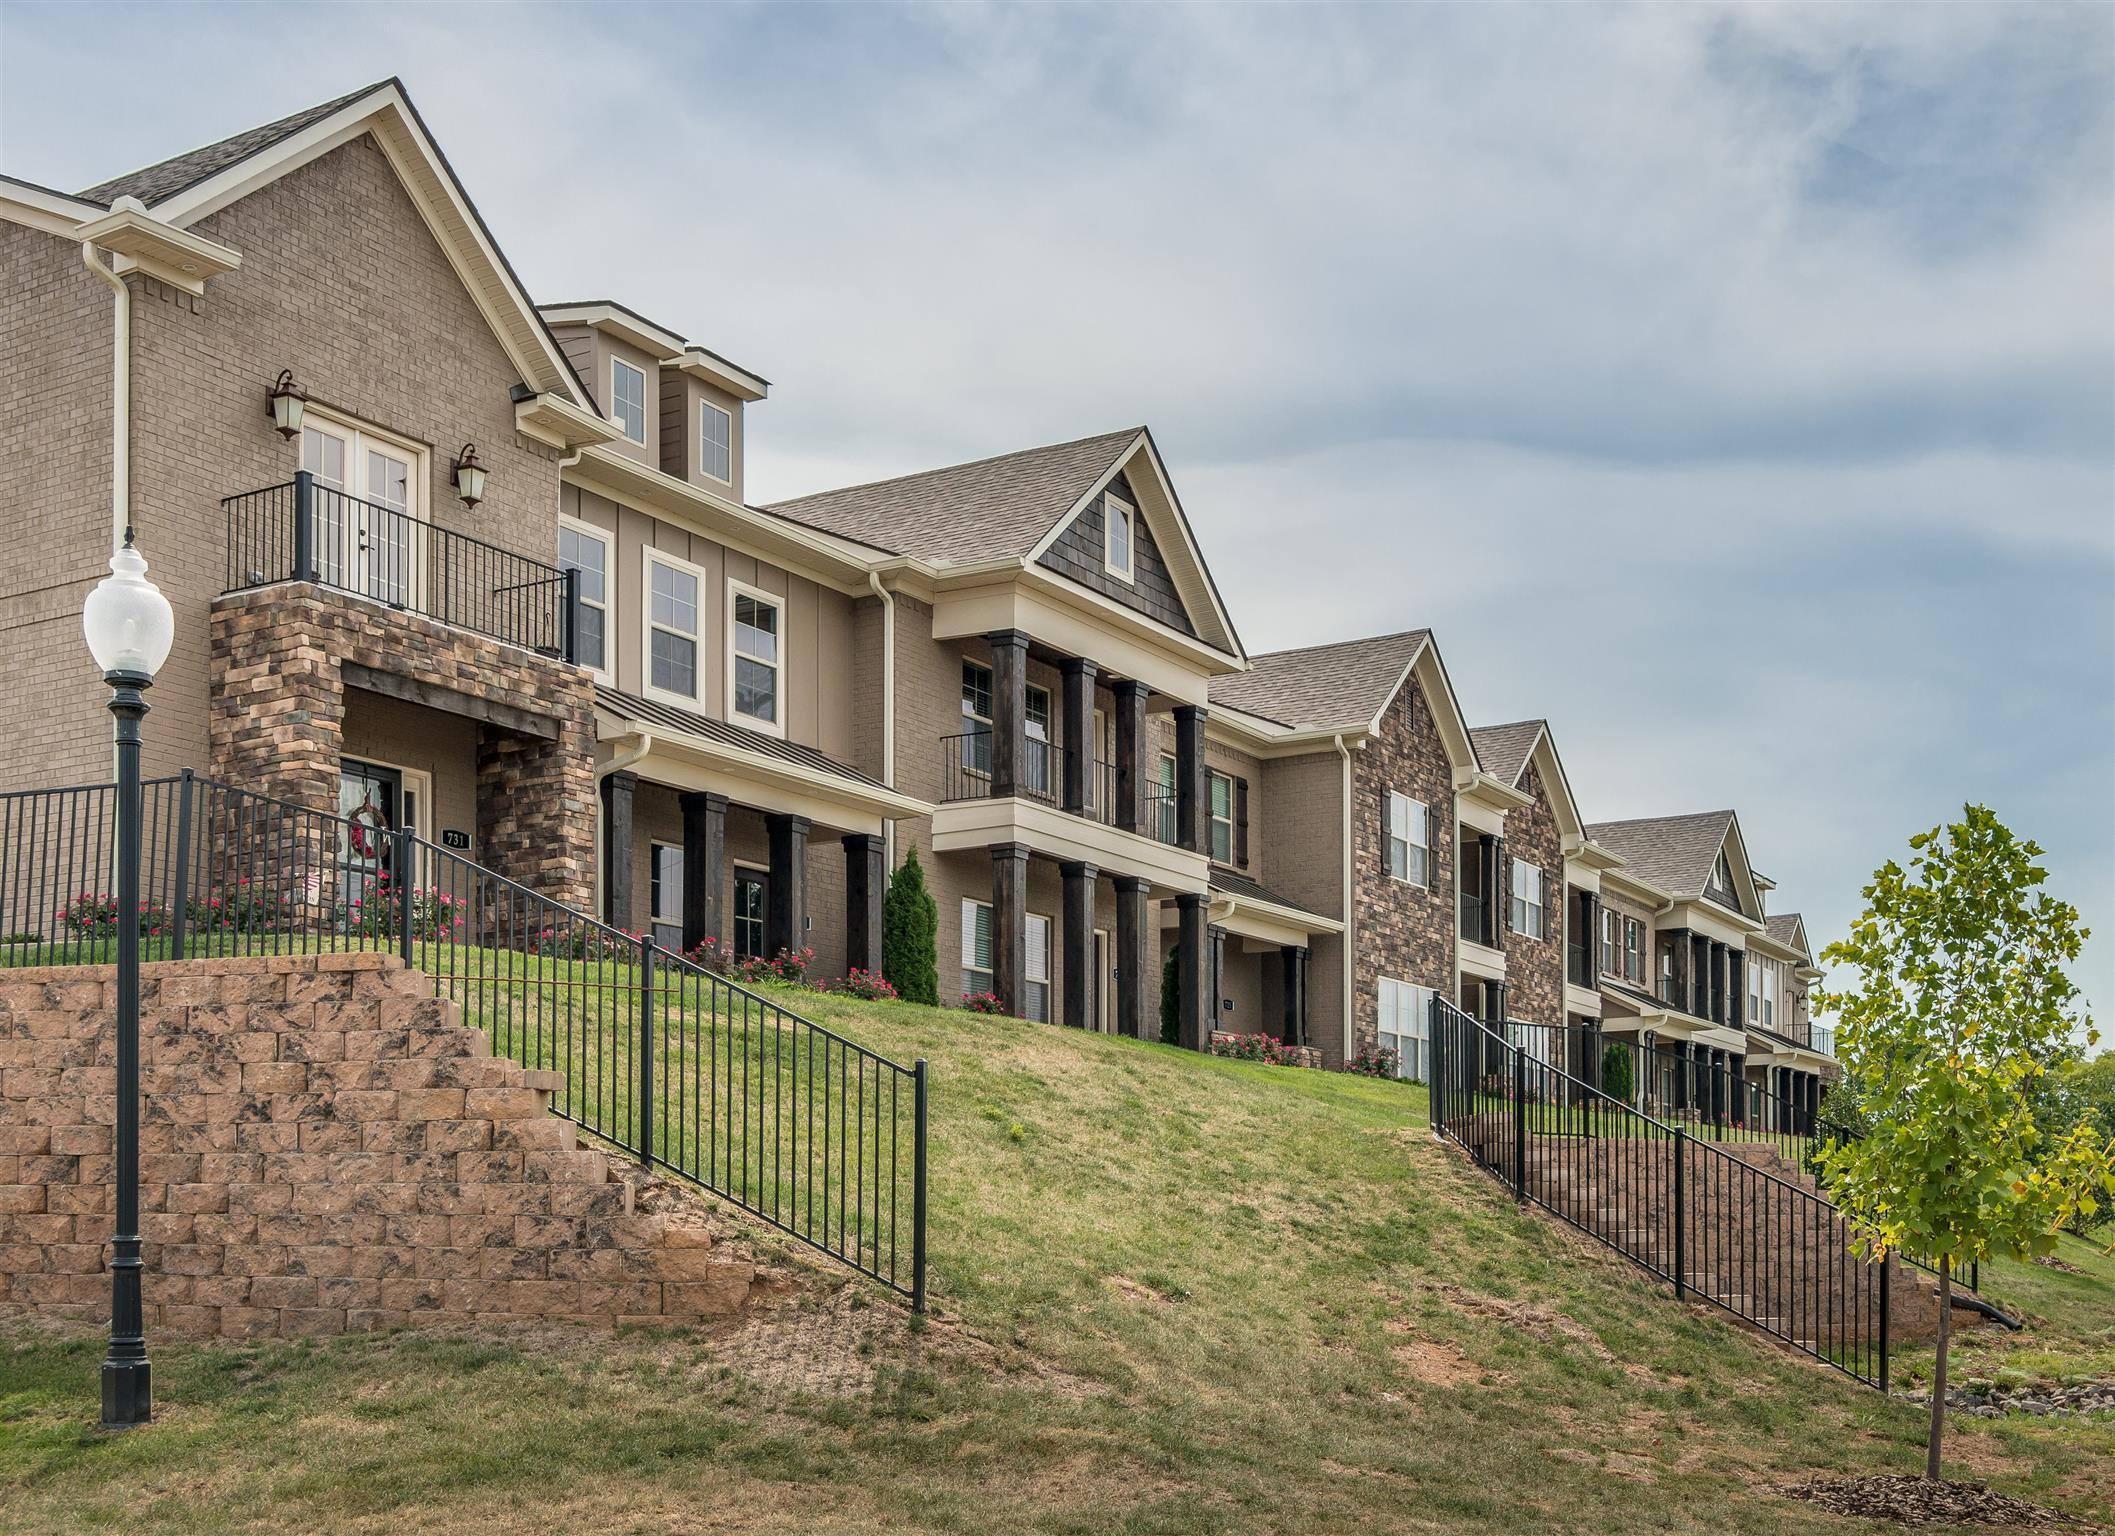 THIS IS A BEAUTIFUL DEVELOPMENT NOW ACCEPTING PRE-SALE. OVER FIVE PLANS, 1300+ - 2200+ SQ. FT. ALL COME WITH SS APPLIANCES, TILE, GRANITE, HARDWOOD LAMINATE, AND CARPET. GREAT OPEN FLOOR PLAN.